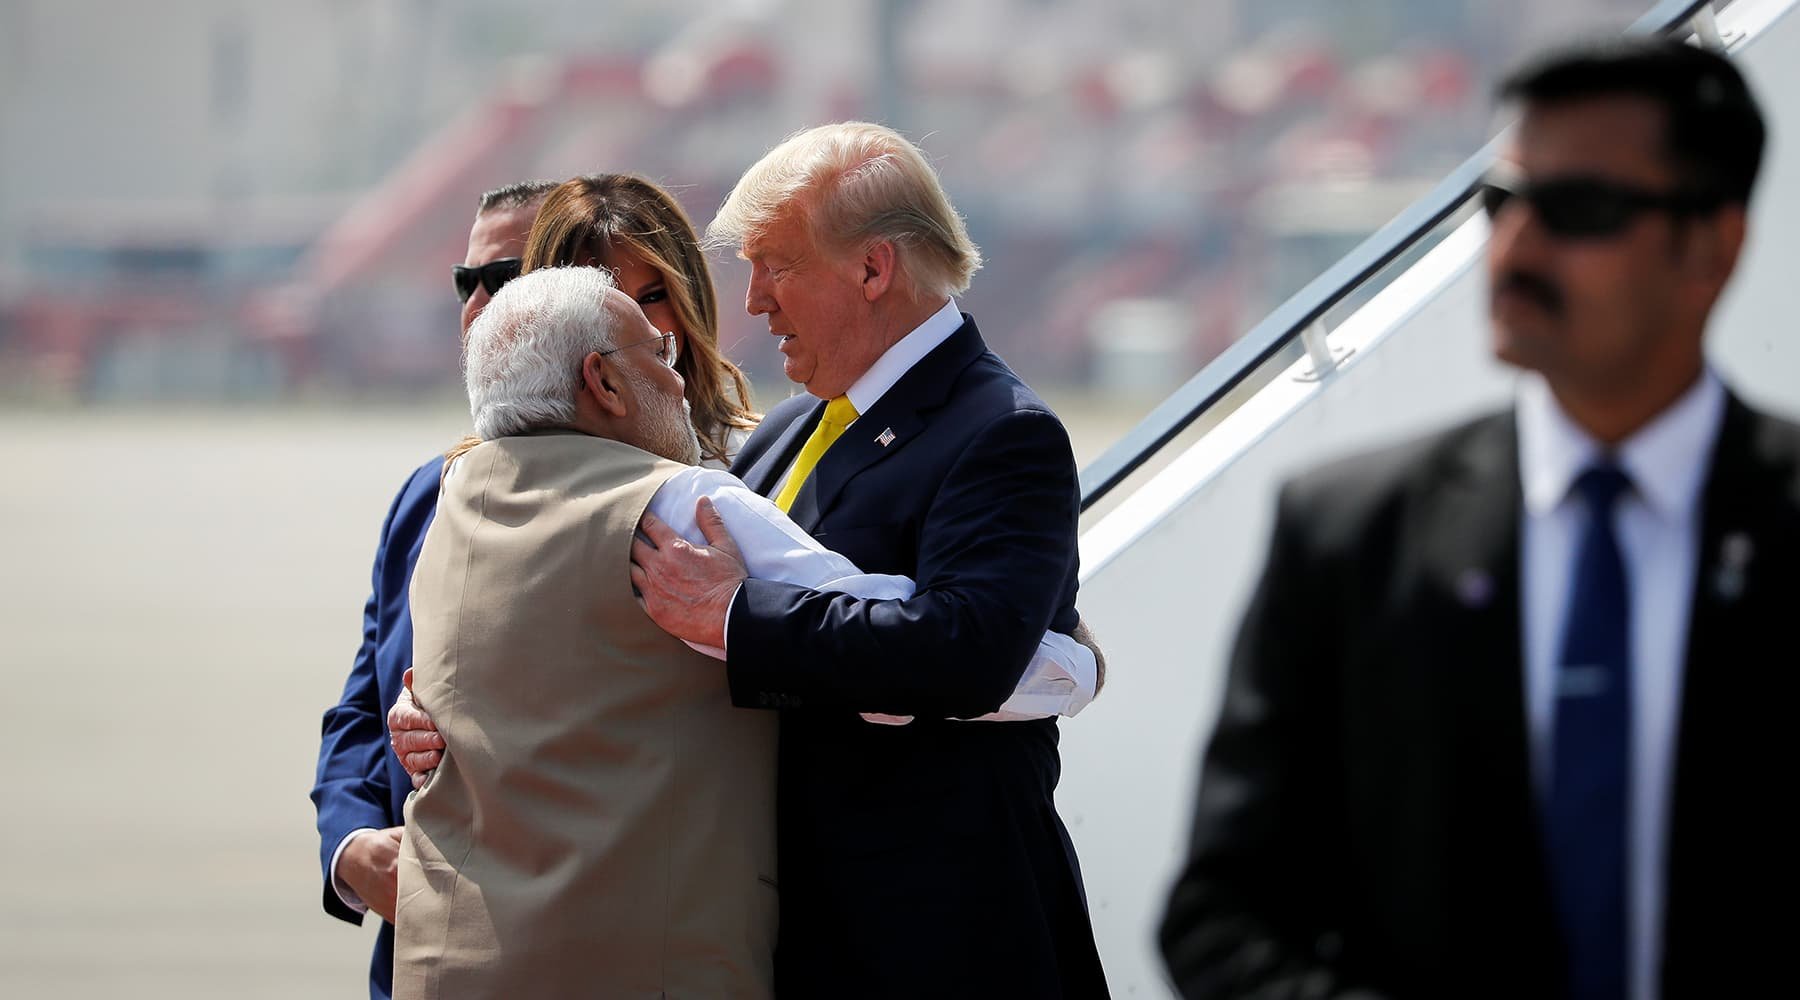 US President Donald Trump greets Indian Prime Minister Narendra Modi as he arrives at Sardar Vallabhbhai Patel International airport in Ahmedabad, India on February 24. — Reuters